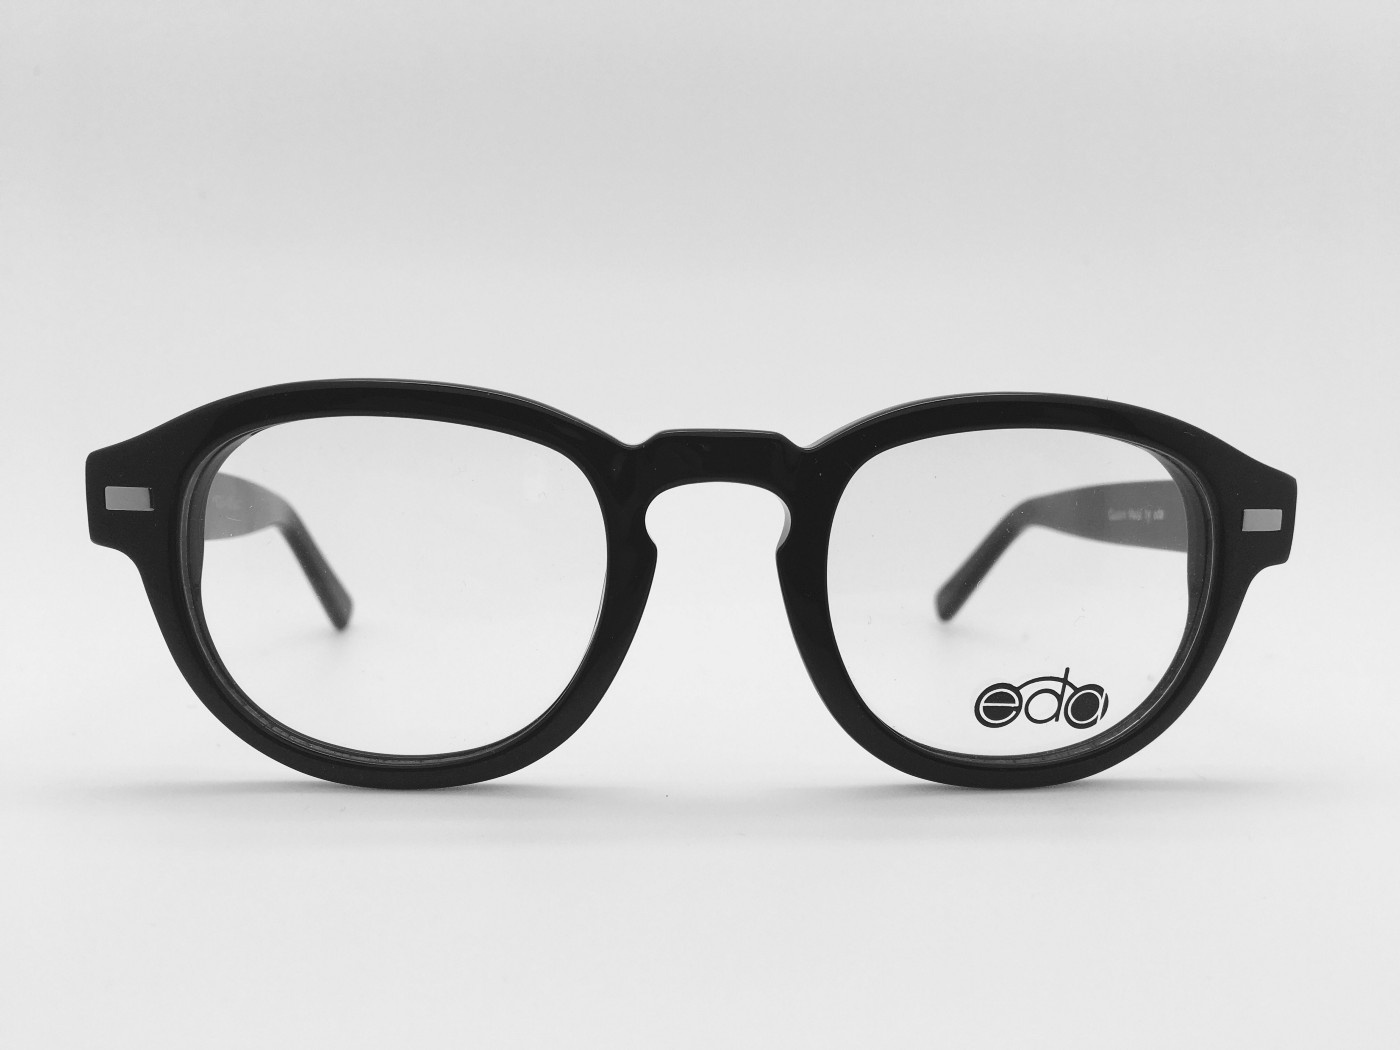 1fba0ba378f2 These all are the best Eyeglass Frames for thick lenses provided by EDA  Frames. EDA Frames is one of the best custom eyewear manufacturing company  located ...